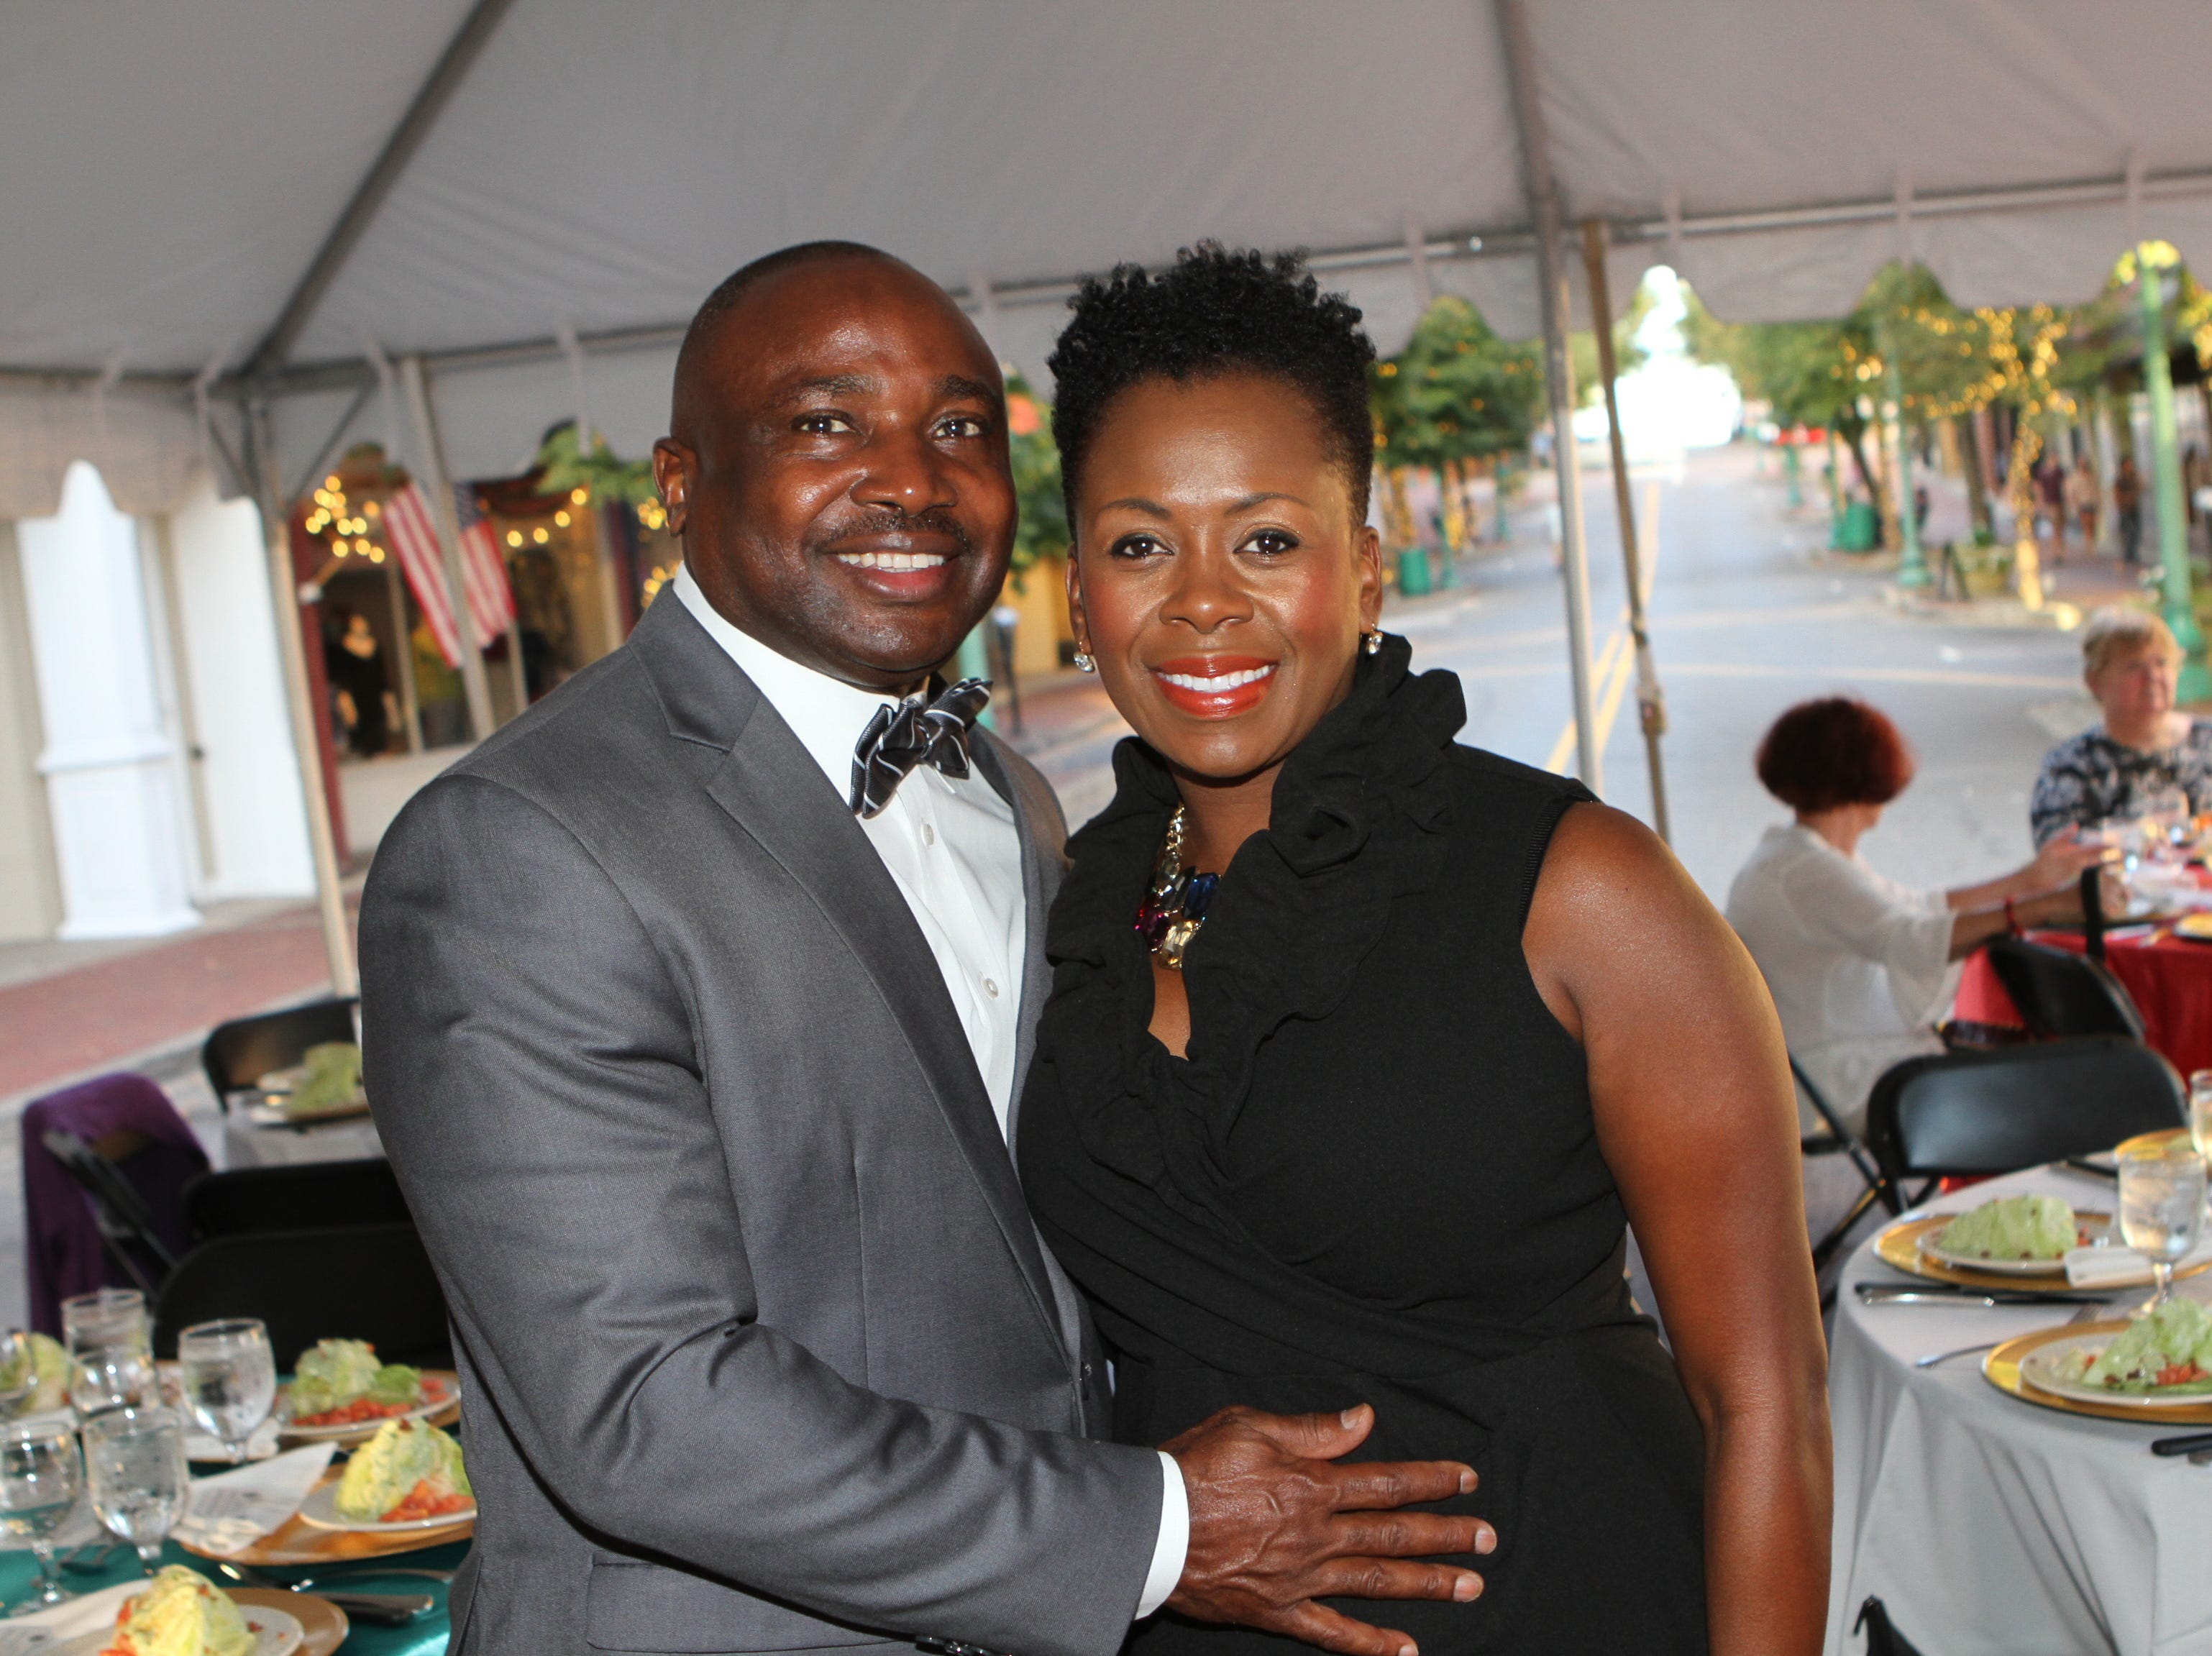 Oneal and Kimberly Wiggins at the 36th Annual Roxy Gala on Saturday, Sept. 15, 2018.